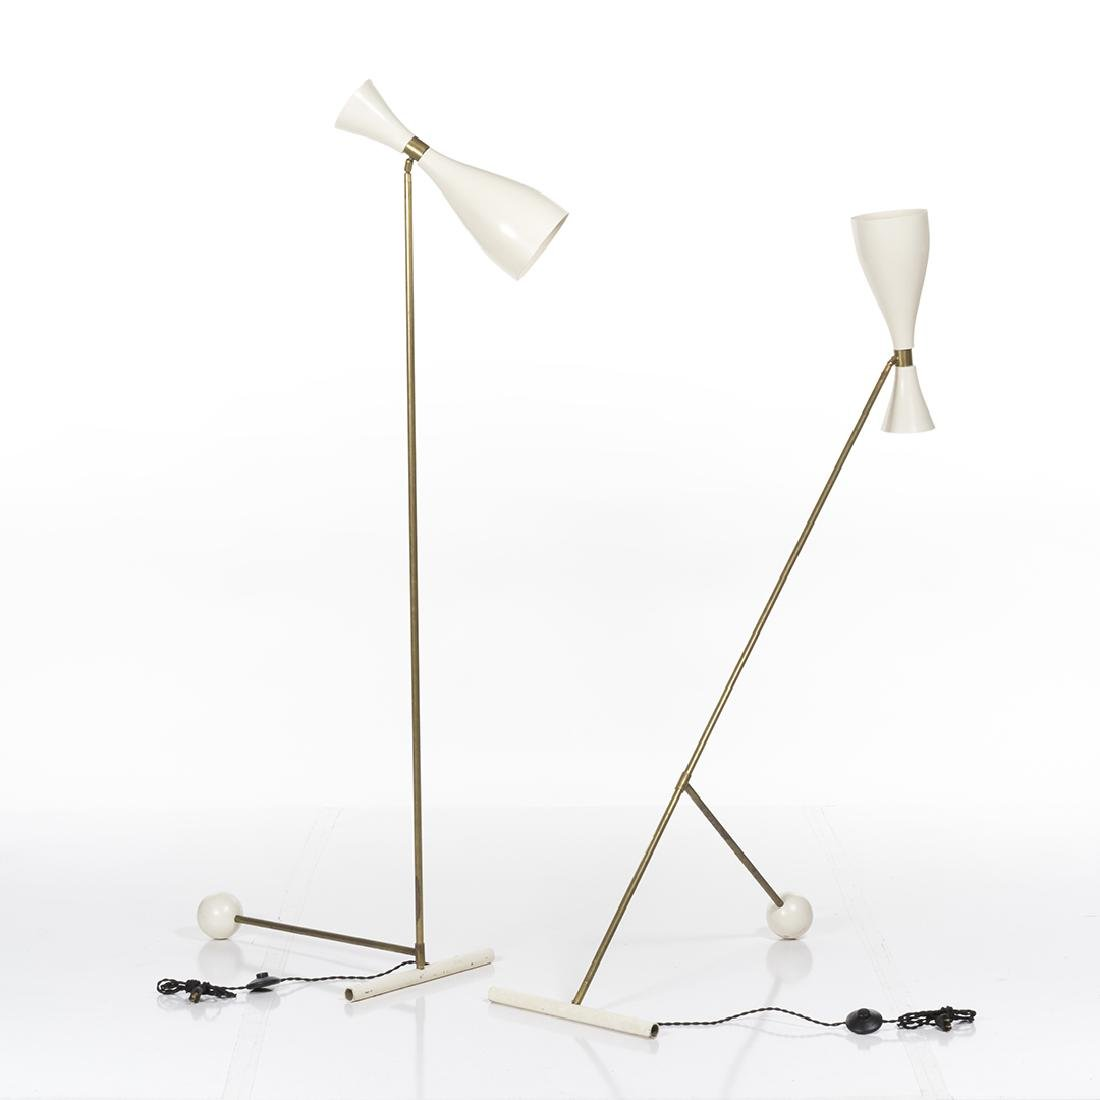 Italian Adjustable Floor Lamps (2) - 2